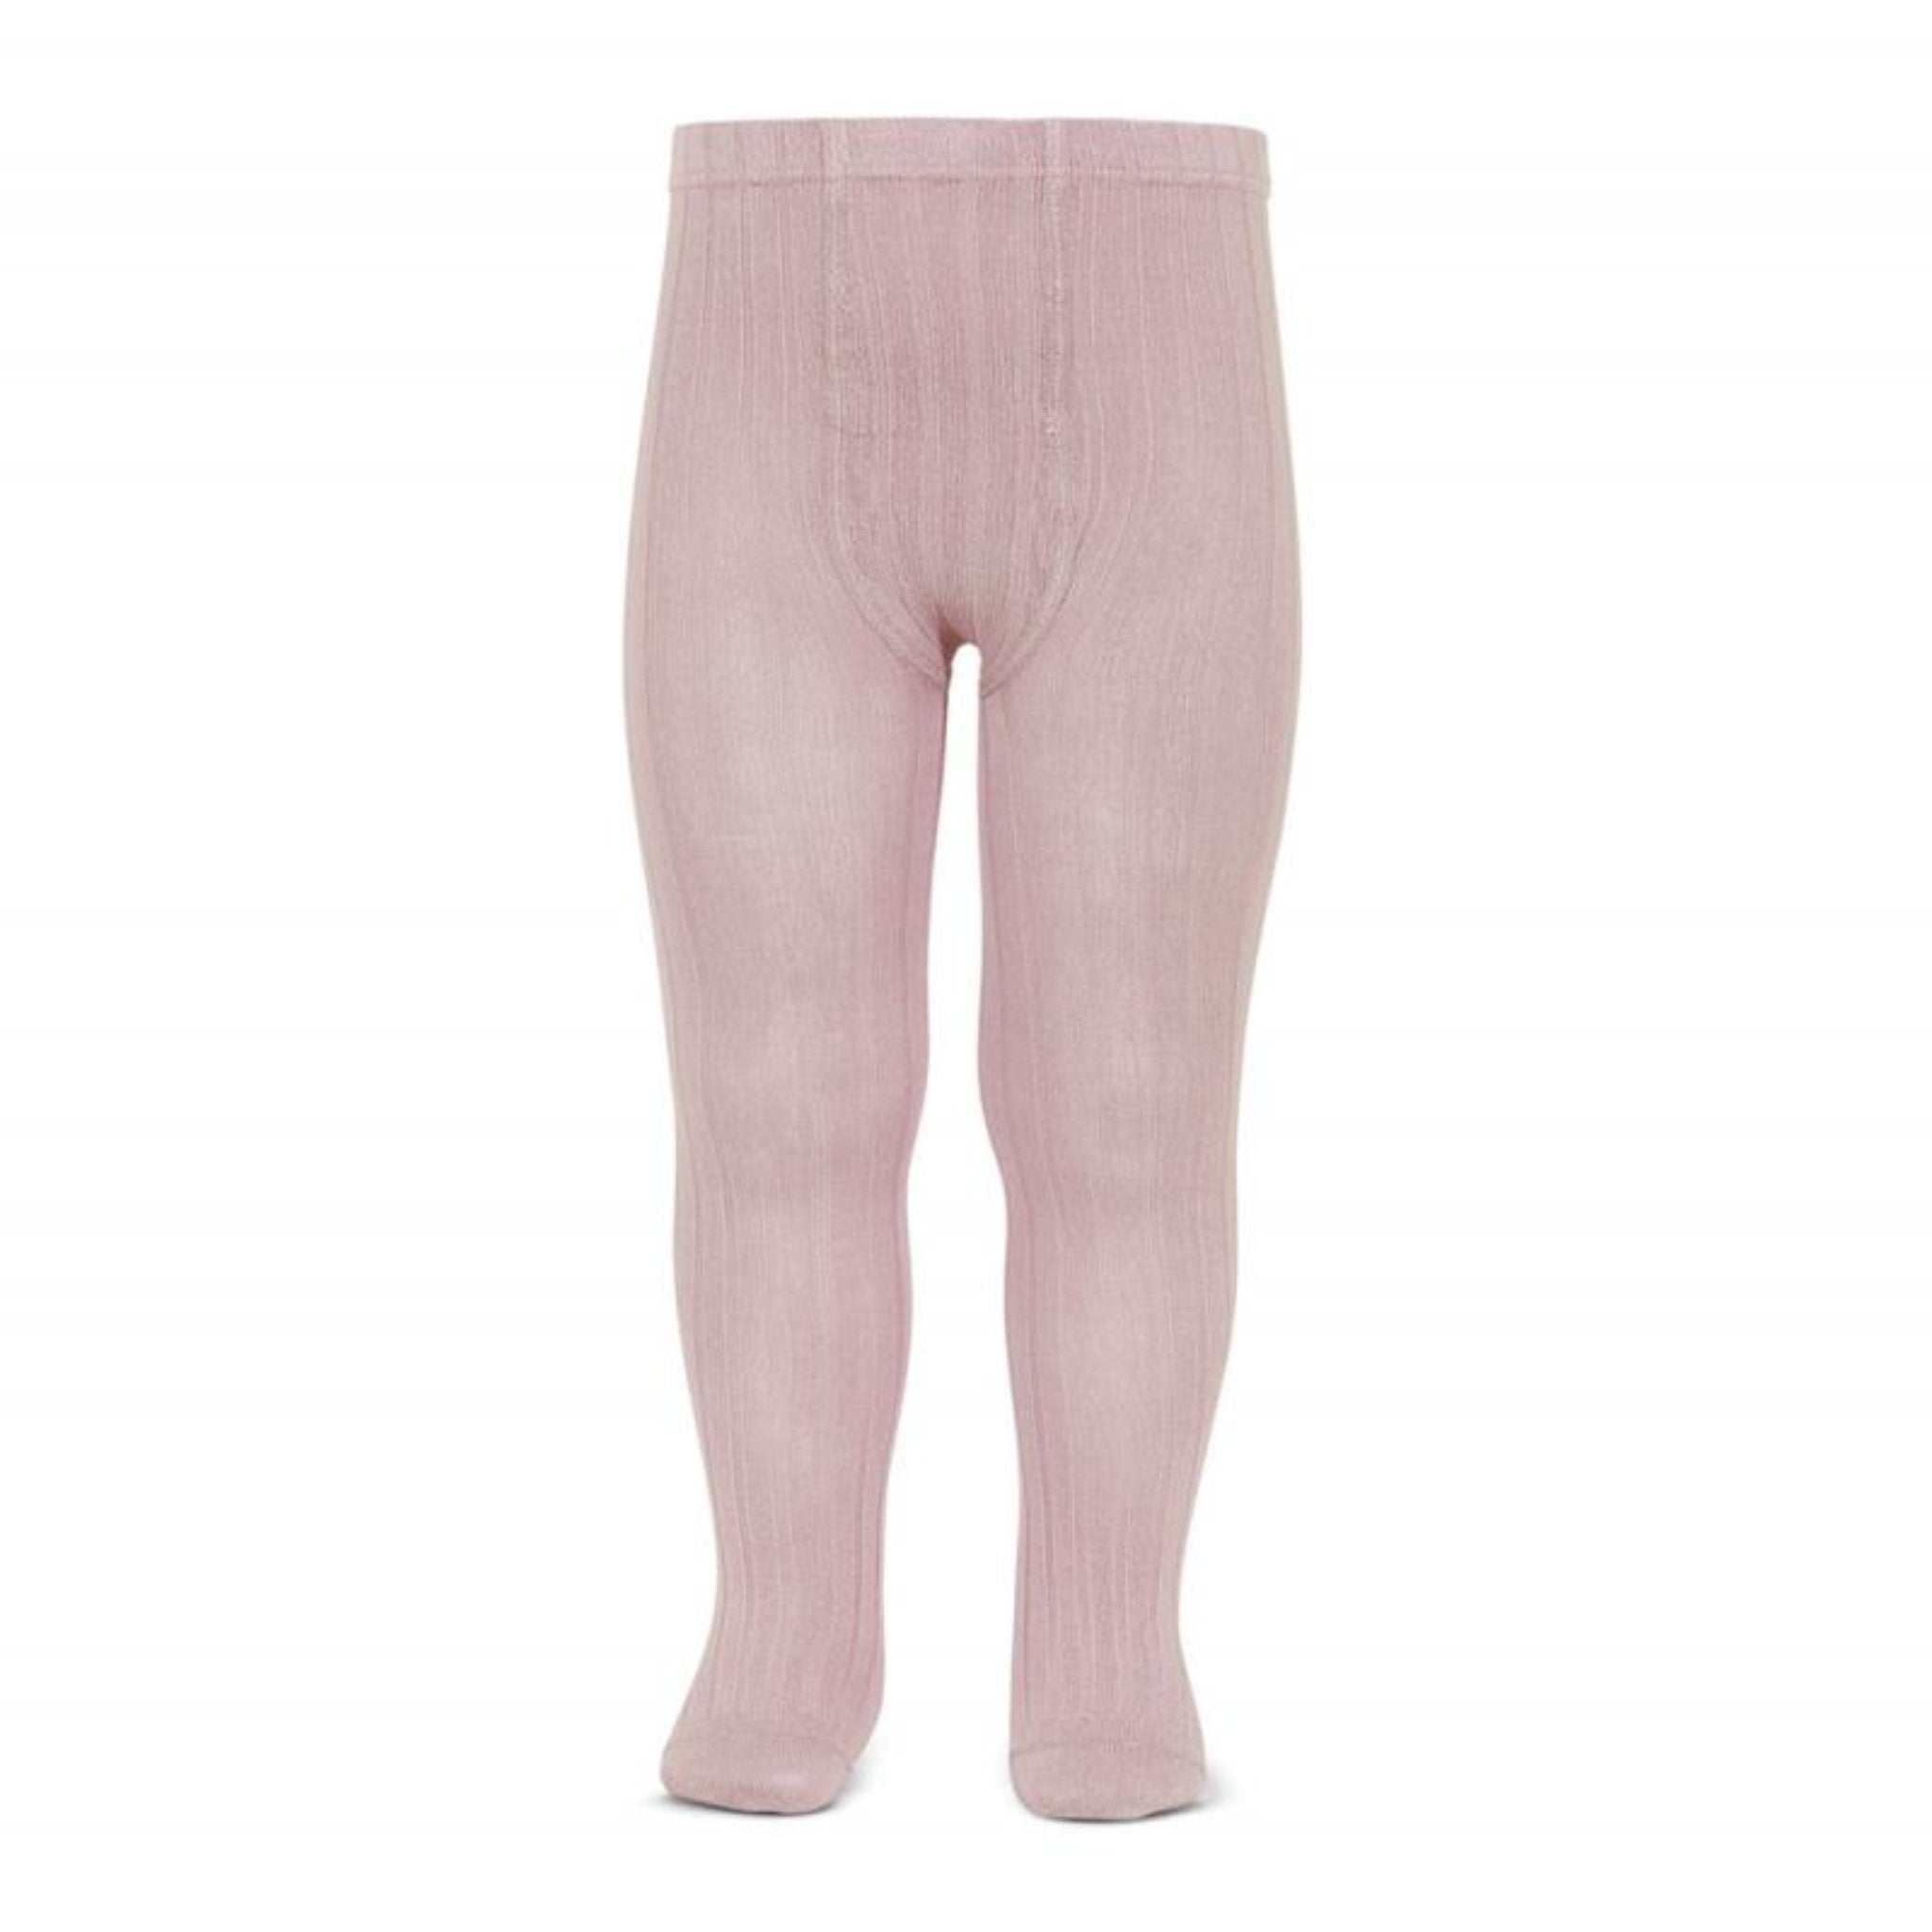 CONDOR | Ribbed Cotton Tights | Rosa Palo (#526)